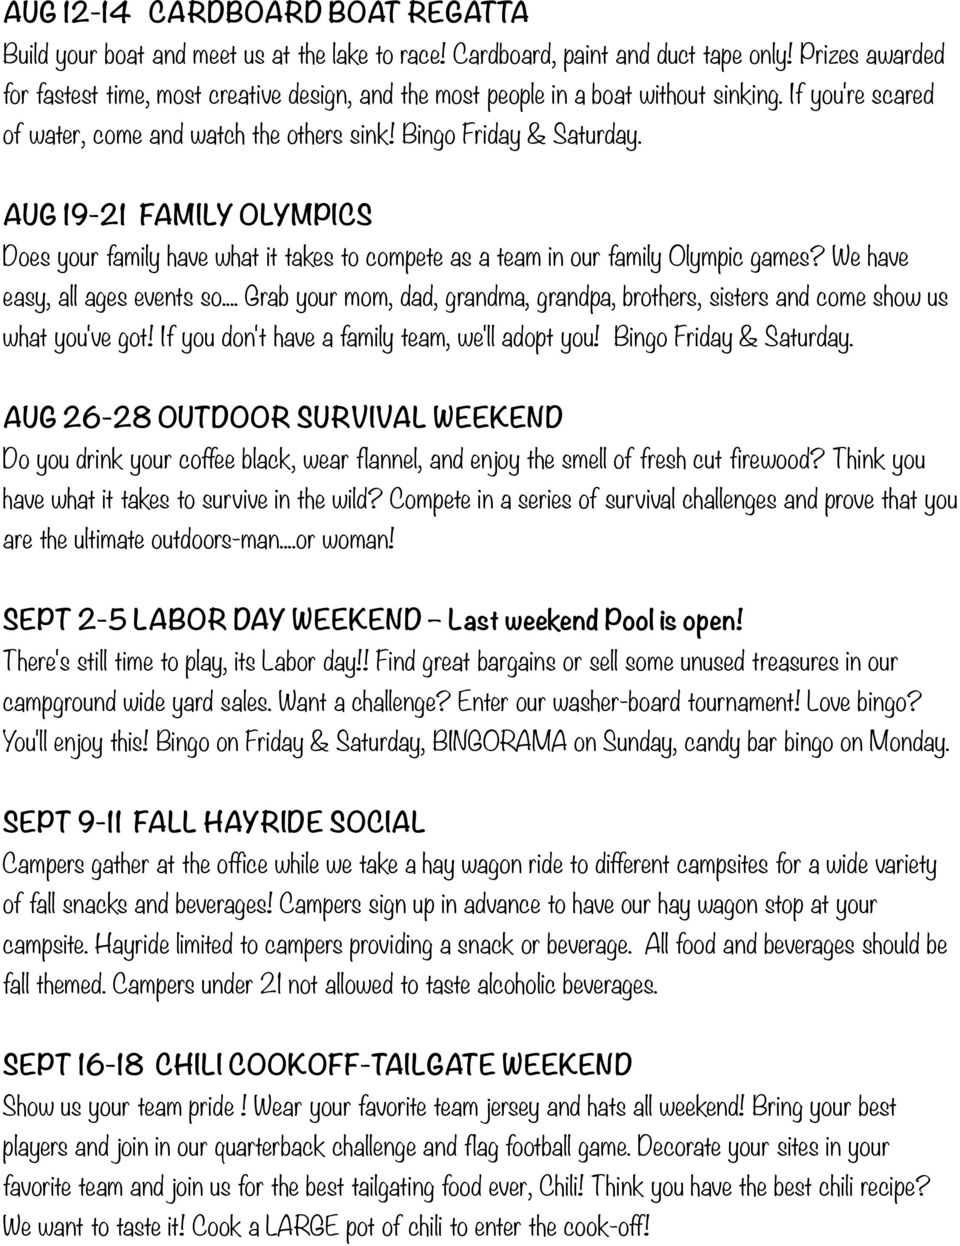 AUG 19-21 FAMILY OLYMPICS Does your family have what it takes to compete as a team in our family Olympic games? We have easy, all ages events so.